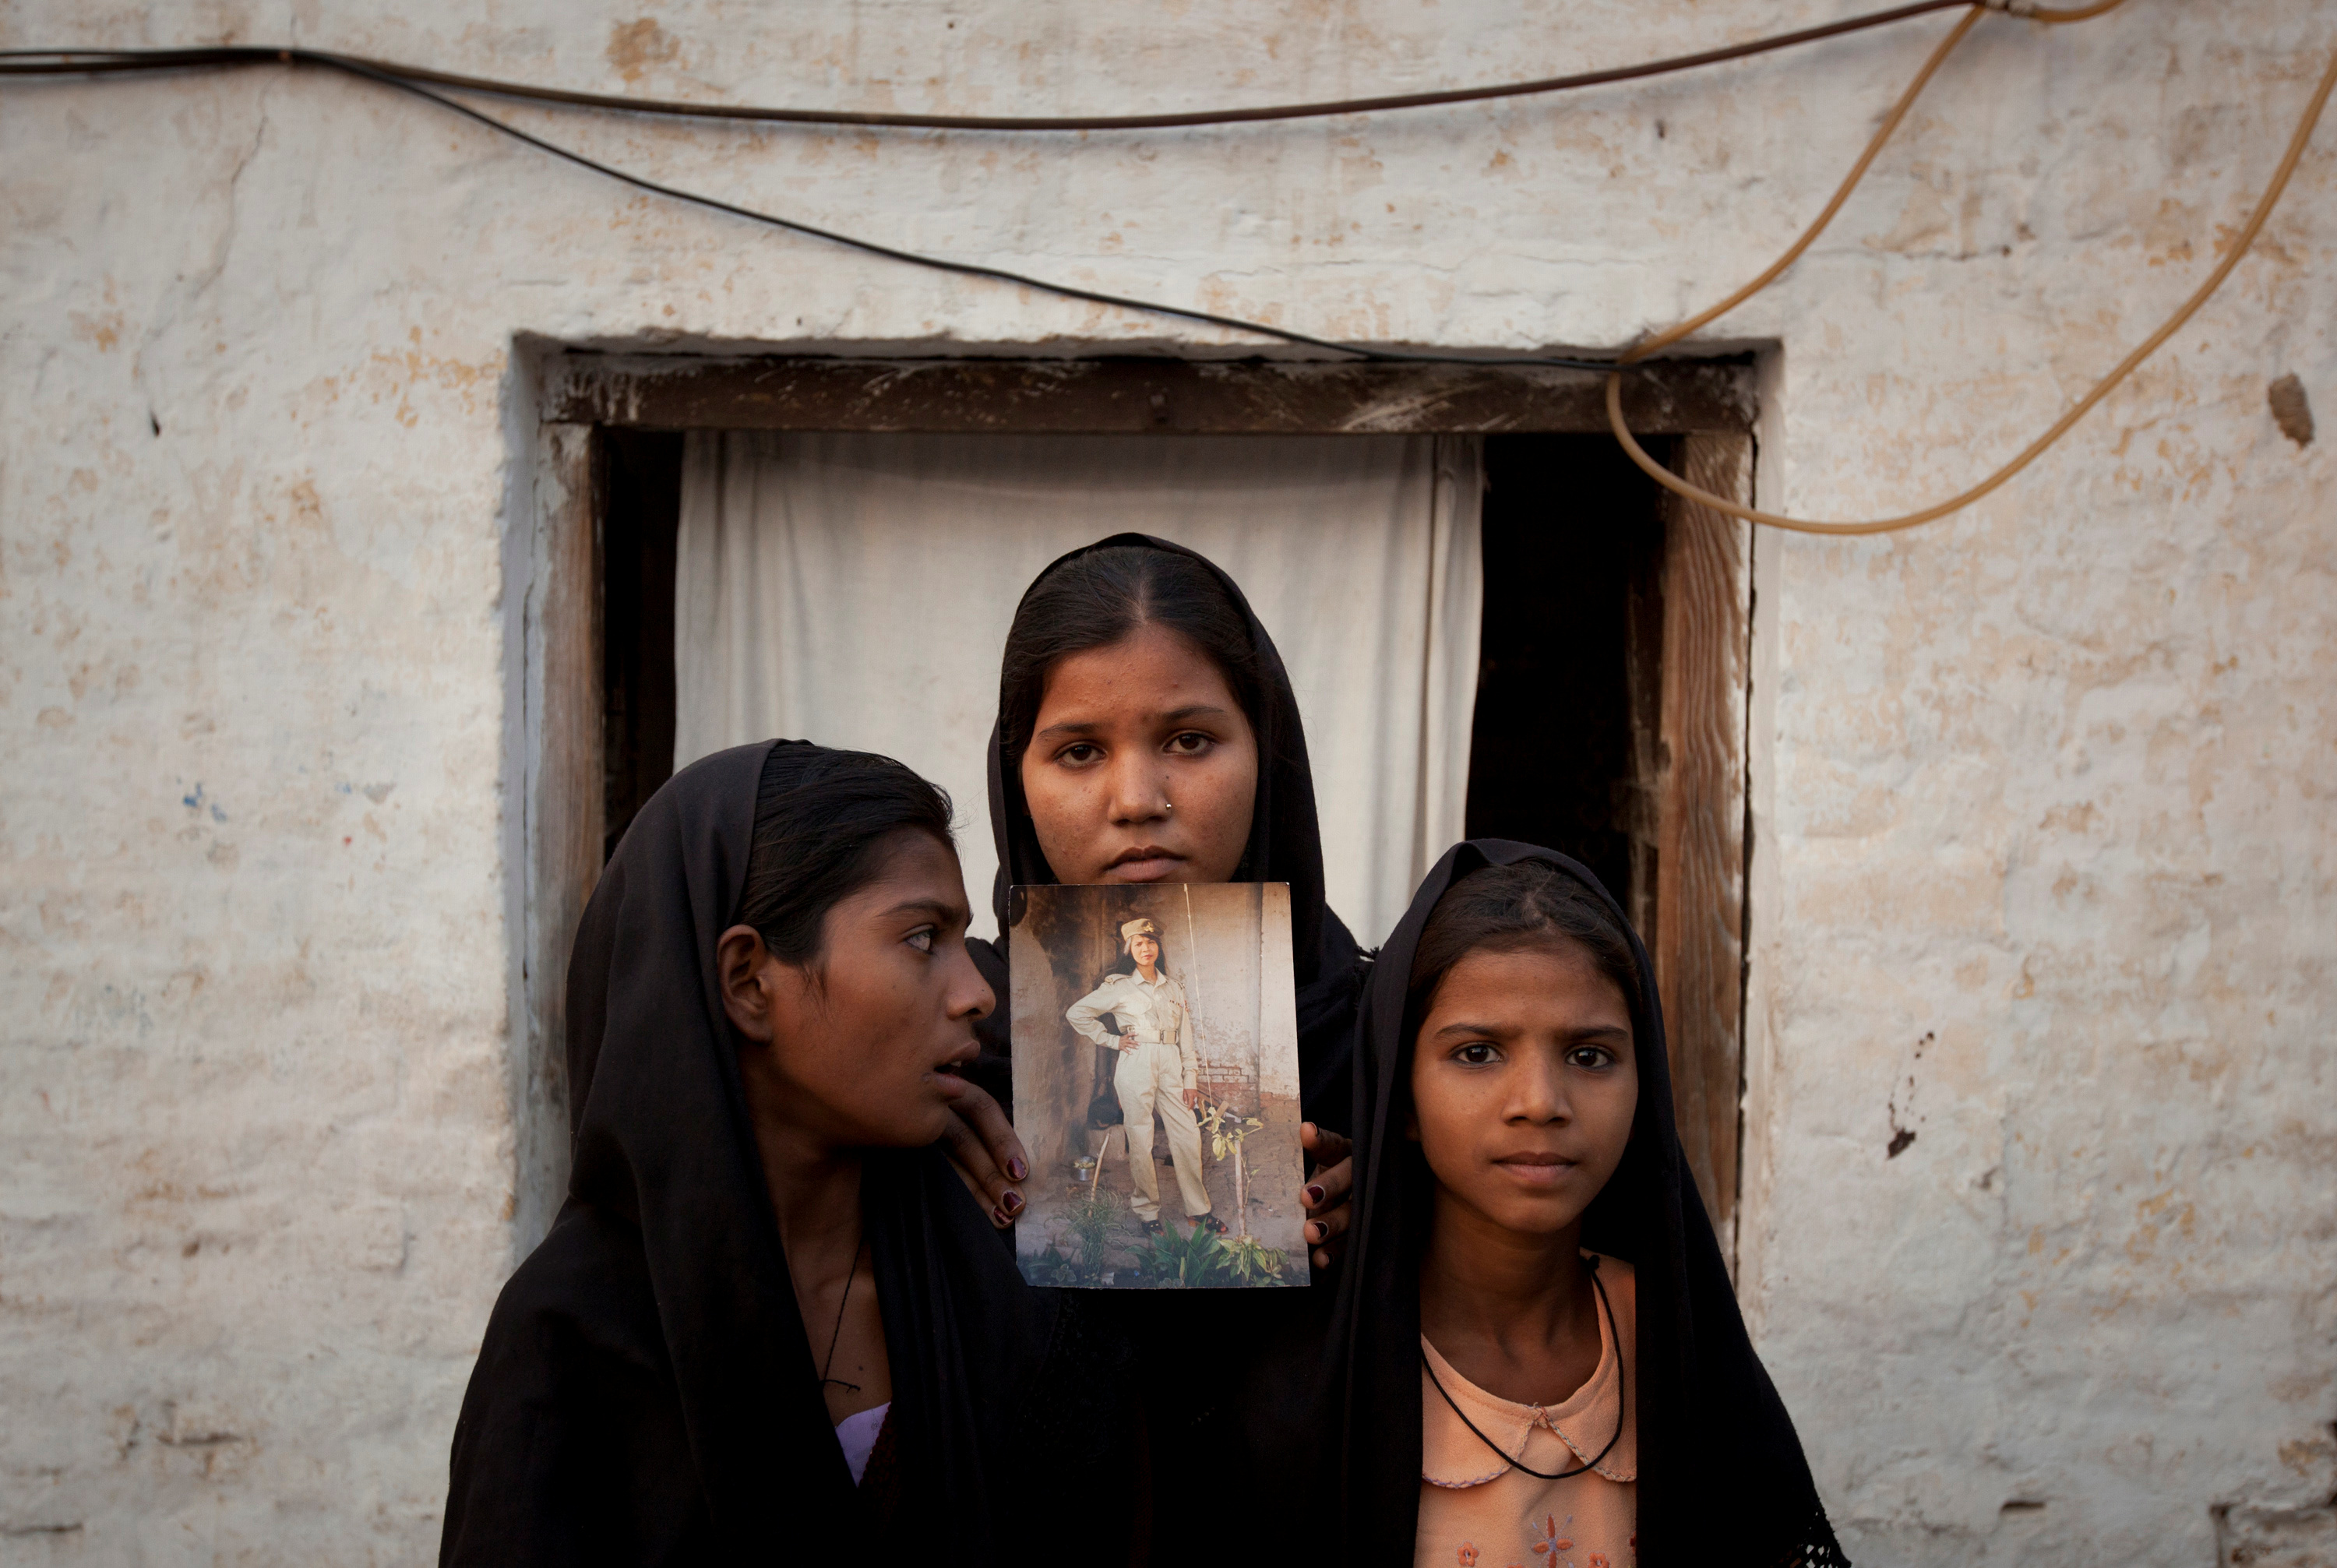 We Urge the Home Secretary to Provide Refuge and Sanctuary to Asia Bibi in the UK